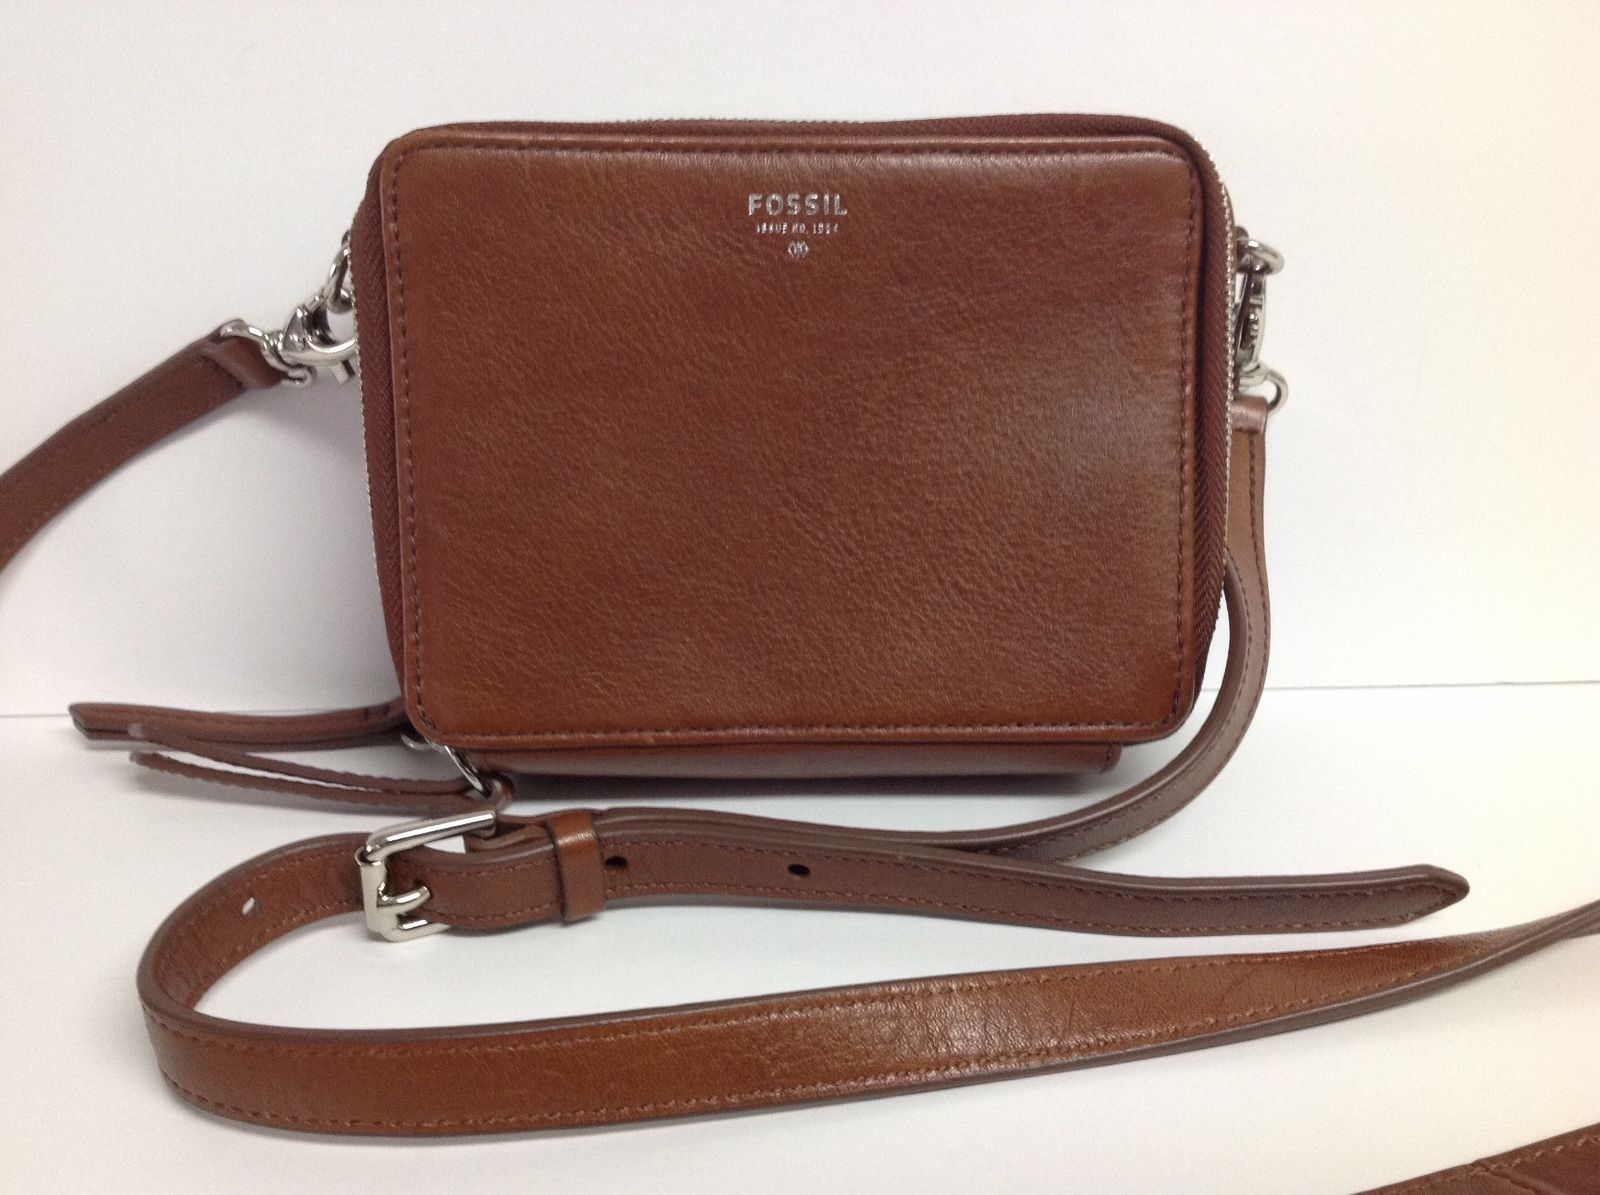 FOSSIL Issue Brown Leather Crossbody